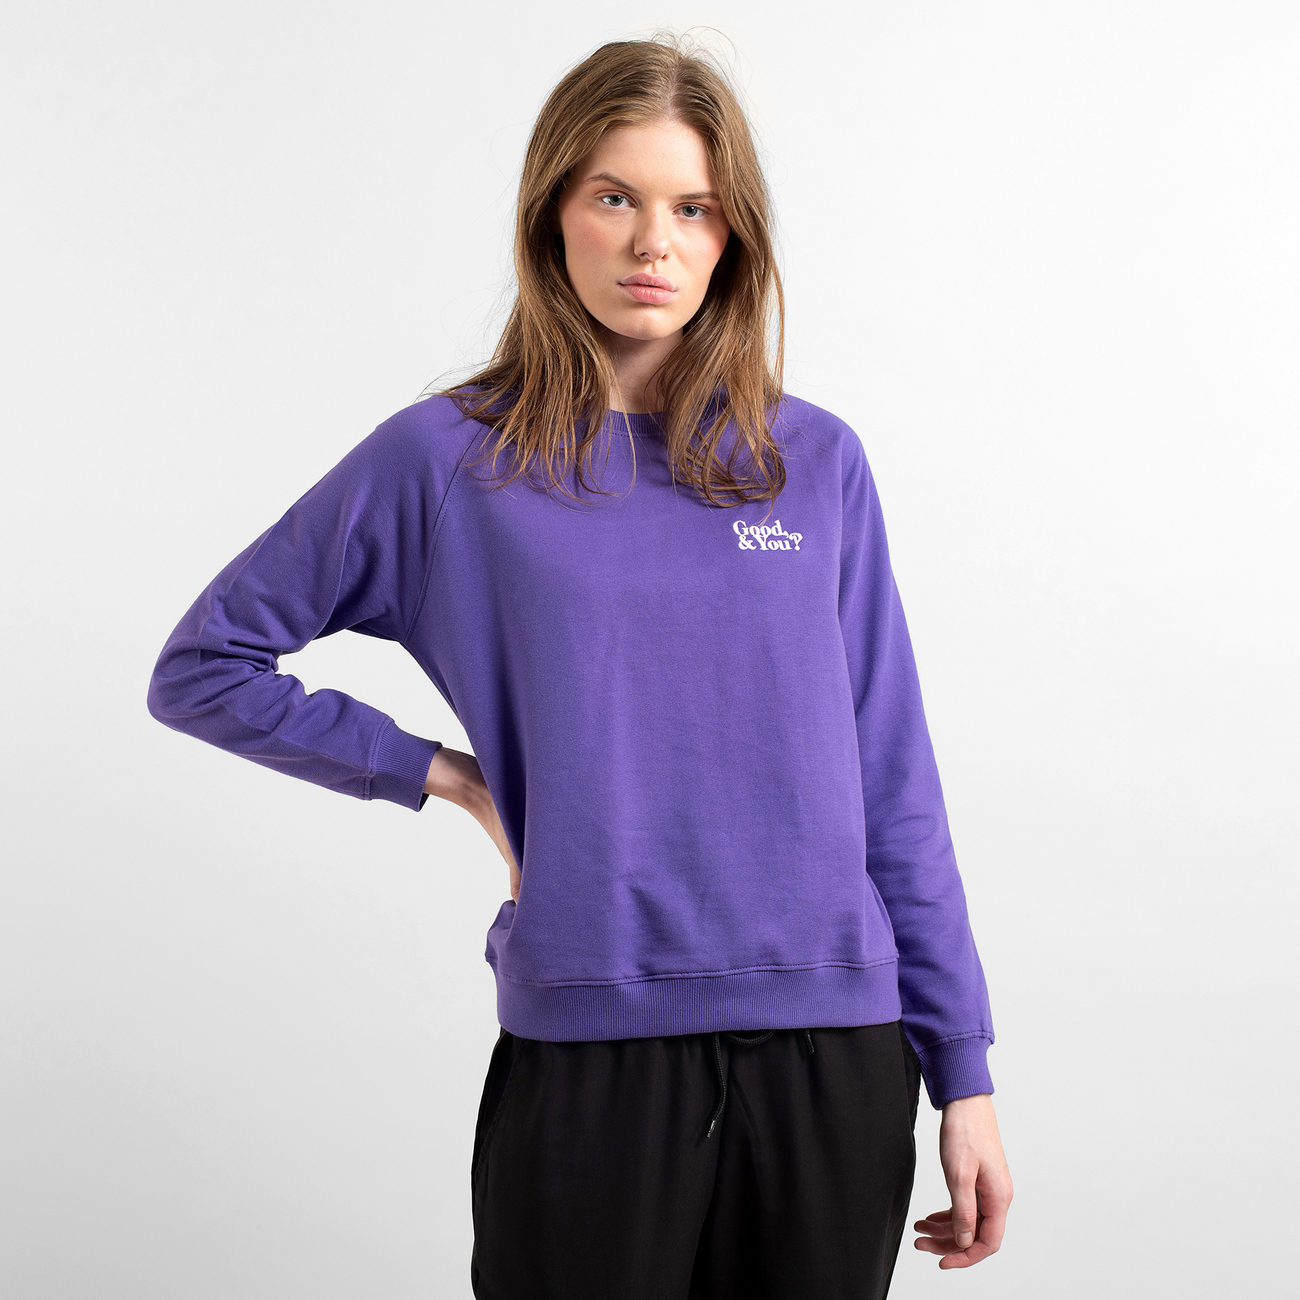 Sweatshirt Ystad Raglan Good and You